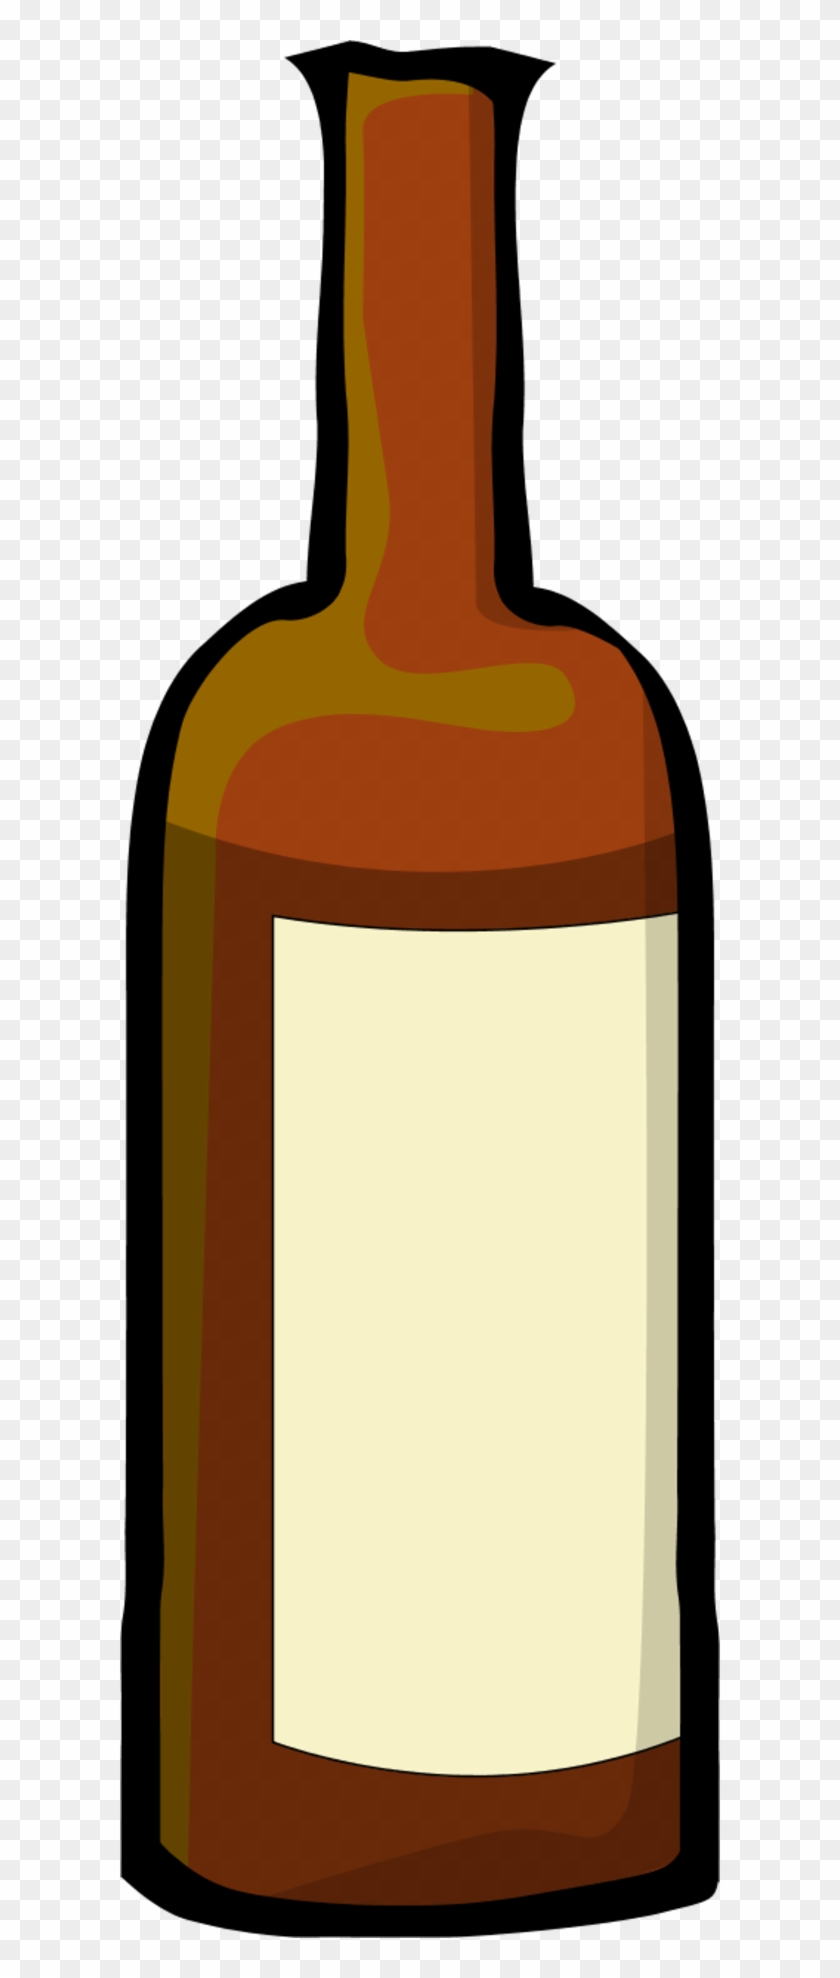 microsoft clipart beer wine bottle clip art free transparent png rh clipartmax com free microsoft clipart for christmas free microsoft clipart cricket game